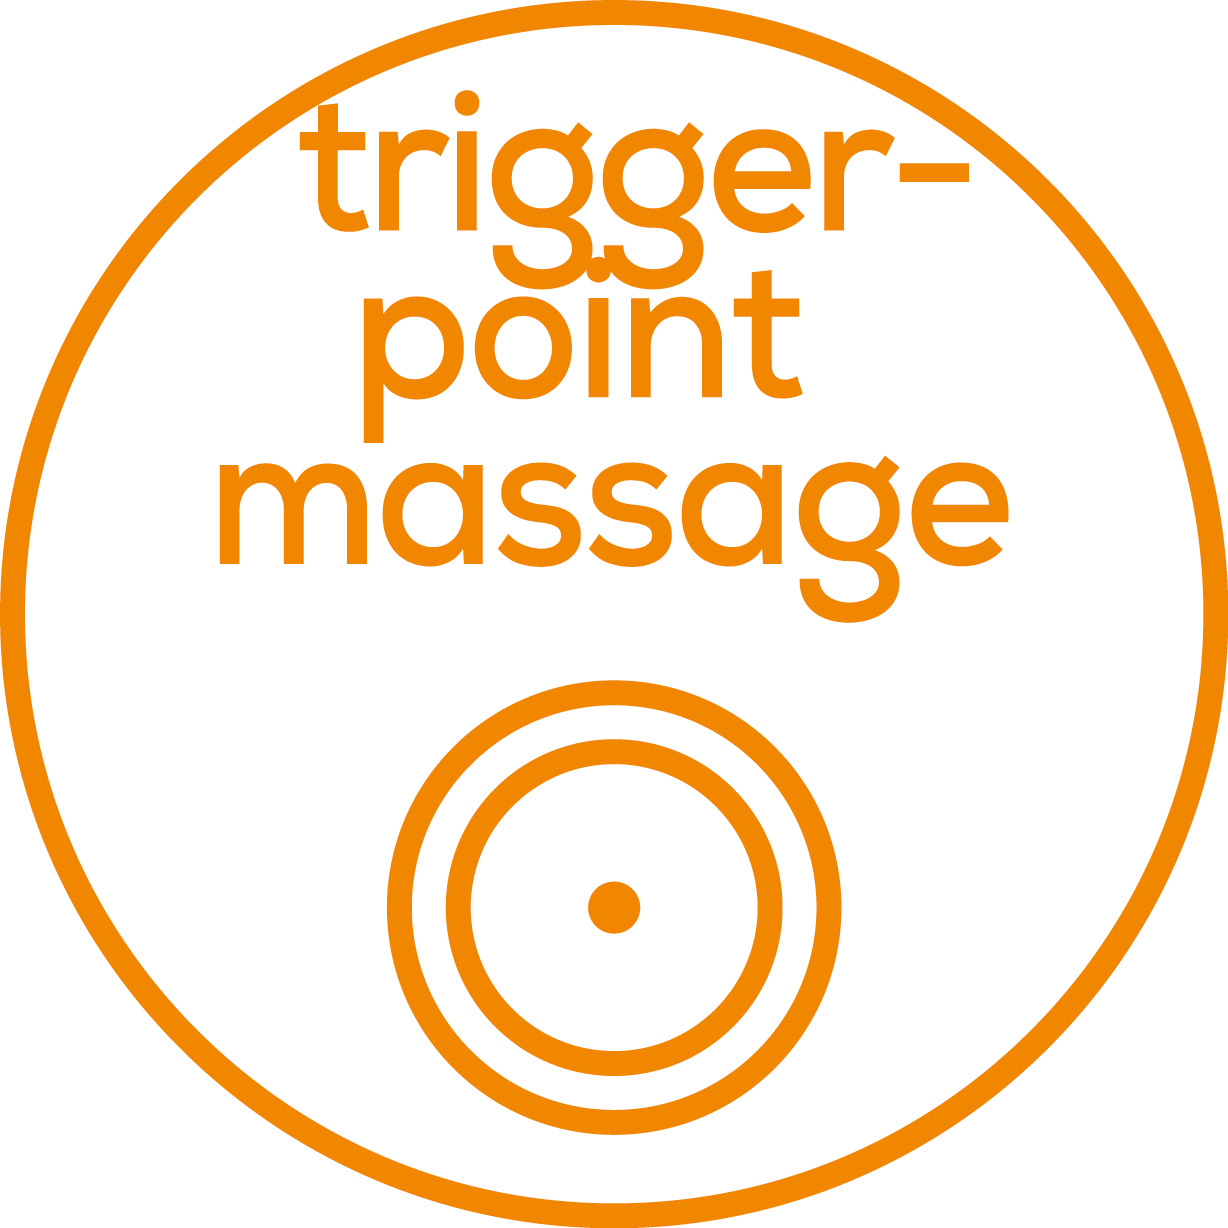 Trigger point massage With vibration for targeted trigger point massage